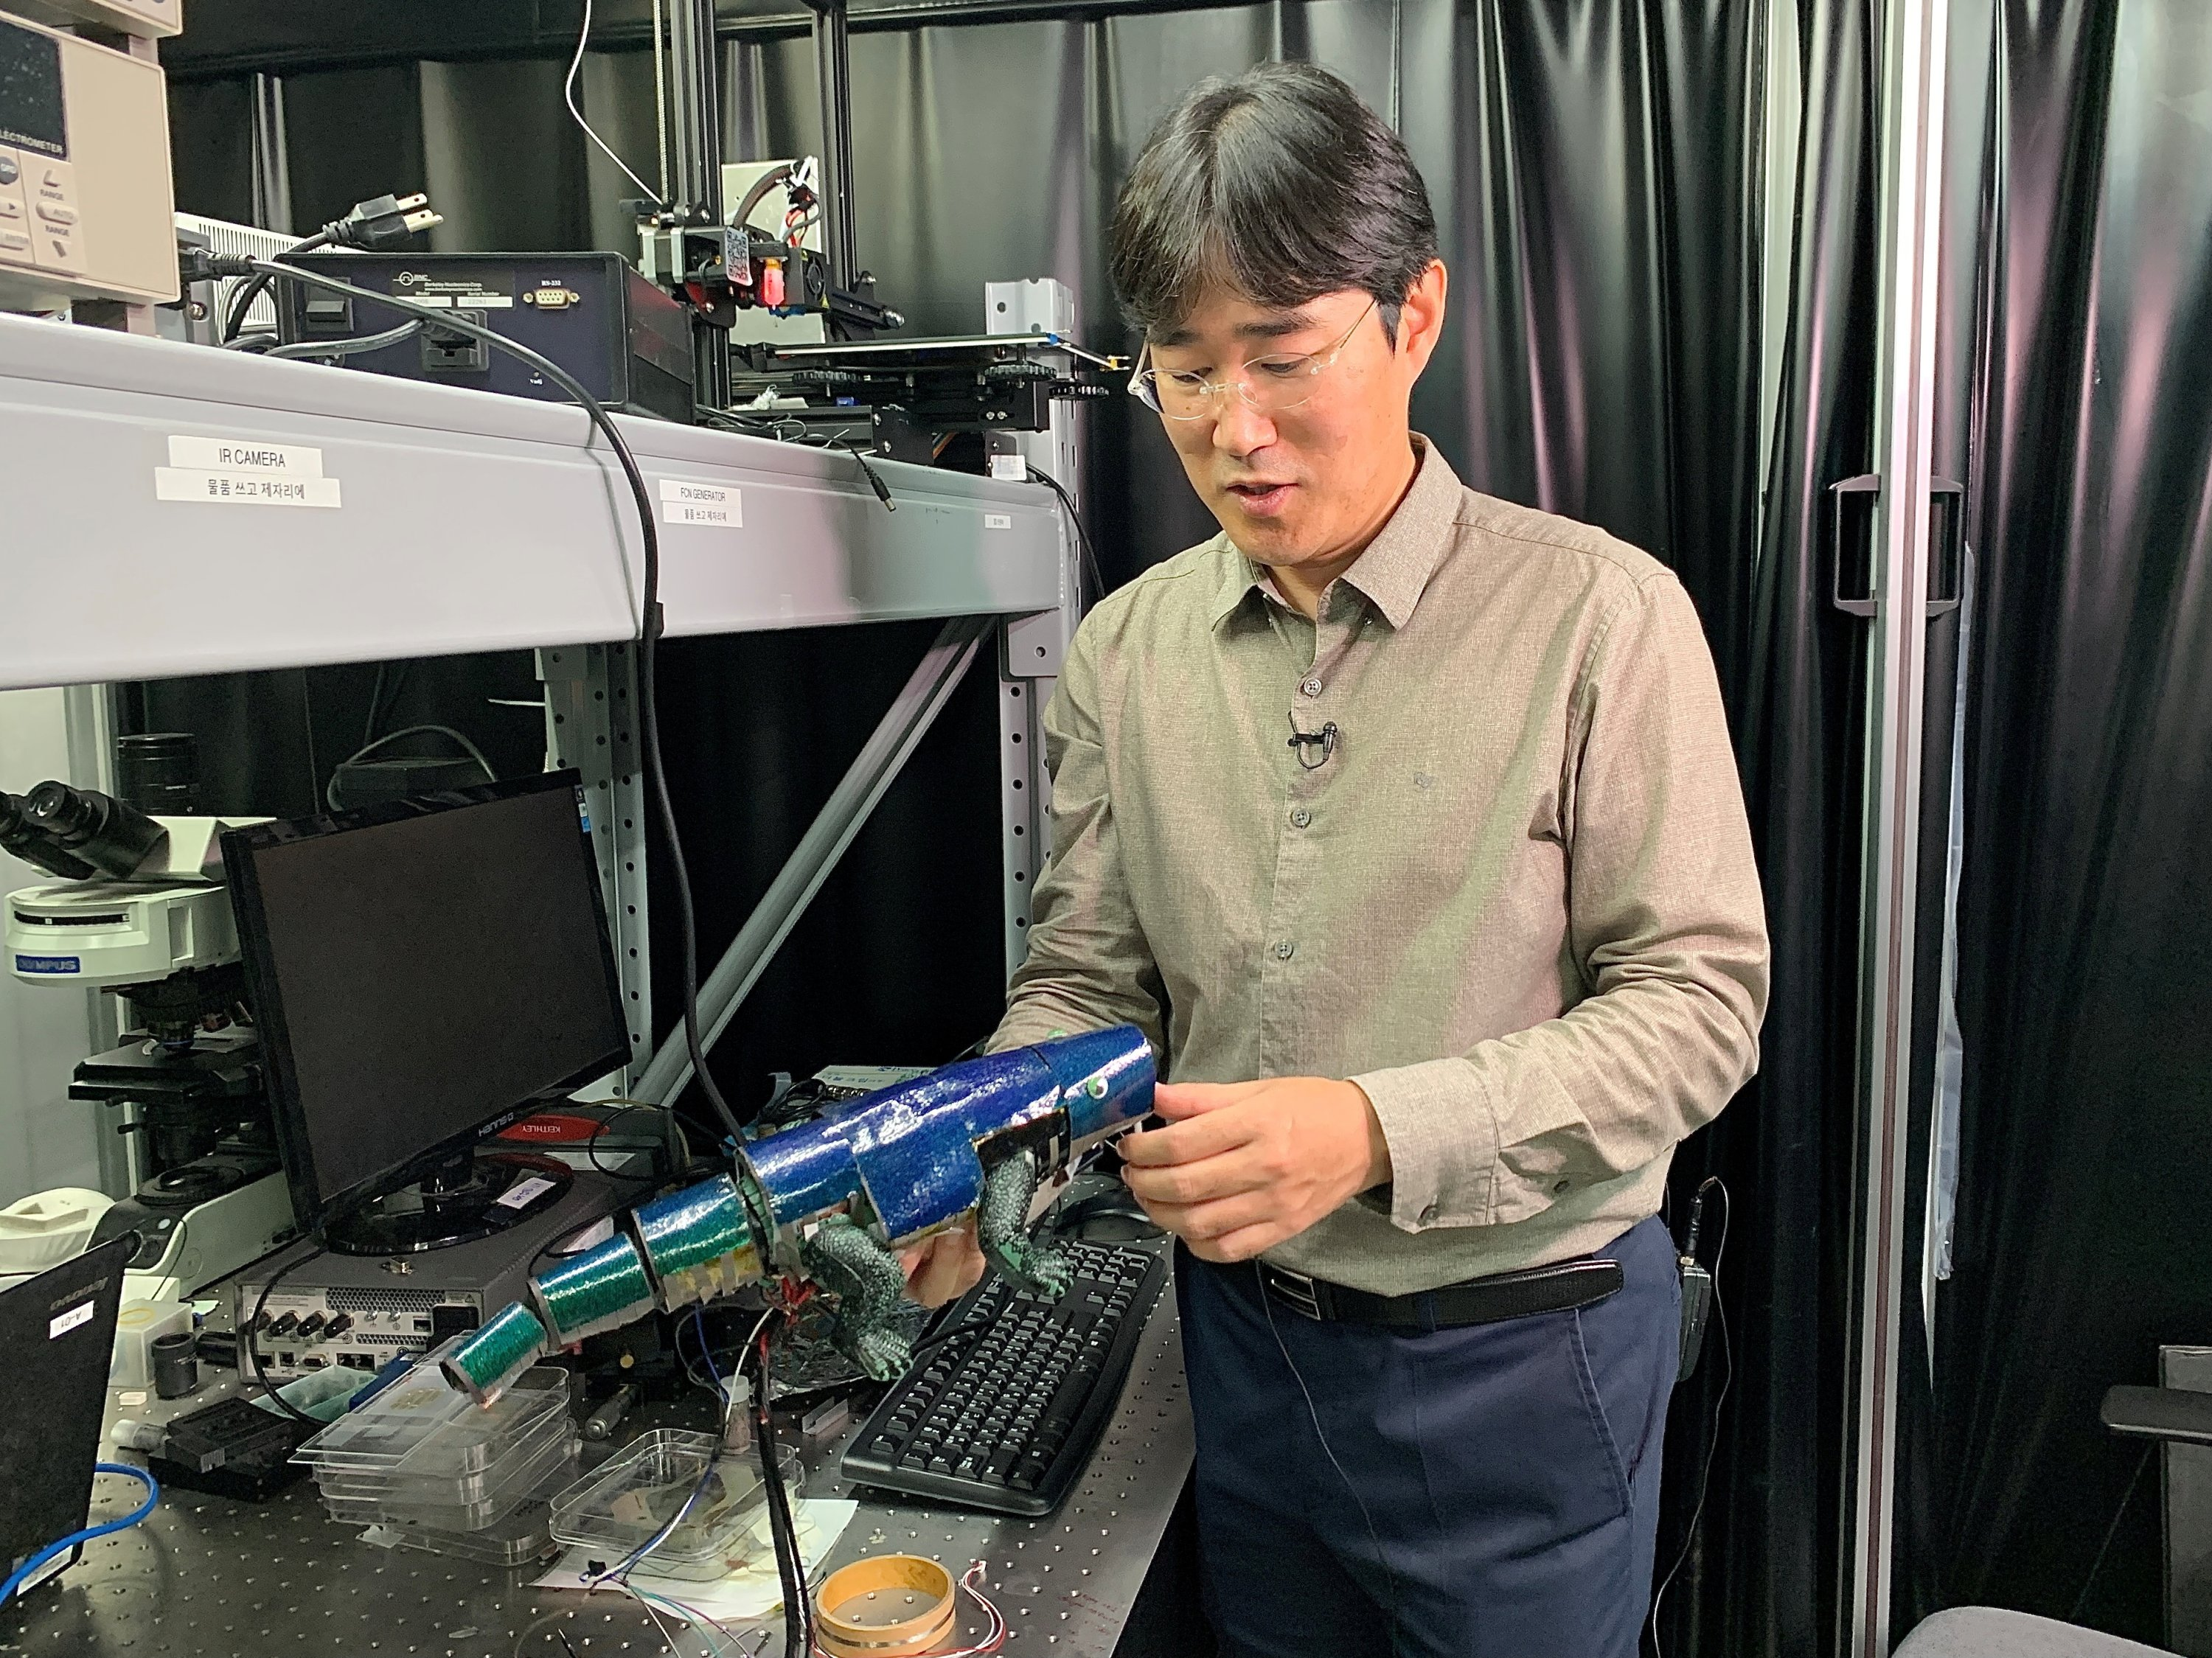 Ko Seung-hwan, a mechanical engineering professor at Seoul National University, looks at a chameleon robot covered with artificial skin, in Seoul, South Korea, Sept. 7, 2021. (Reuters Photo)